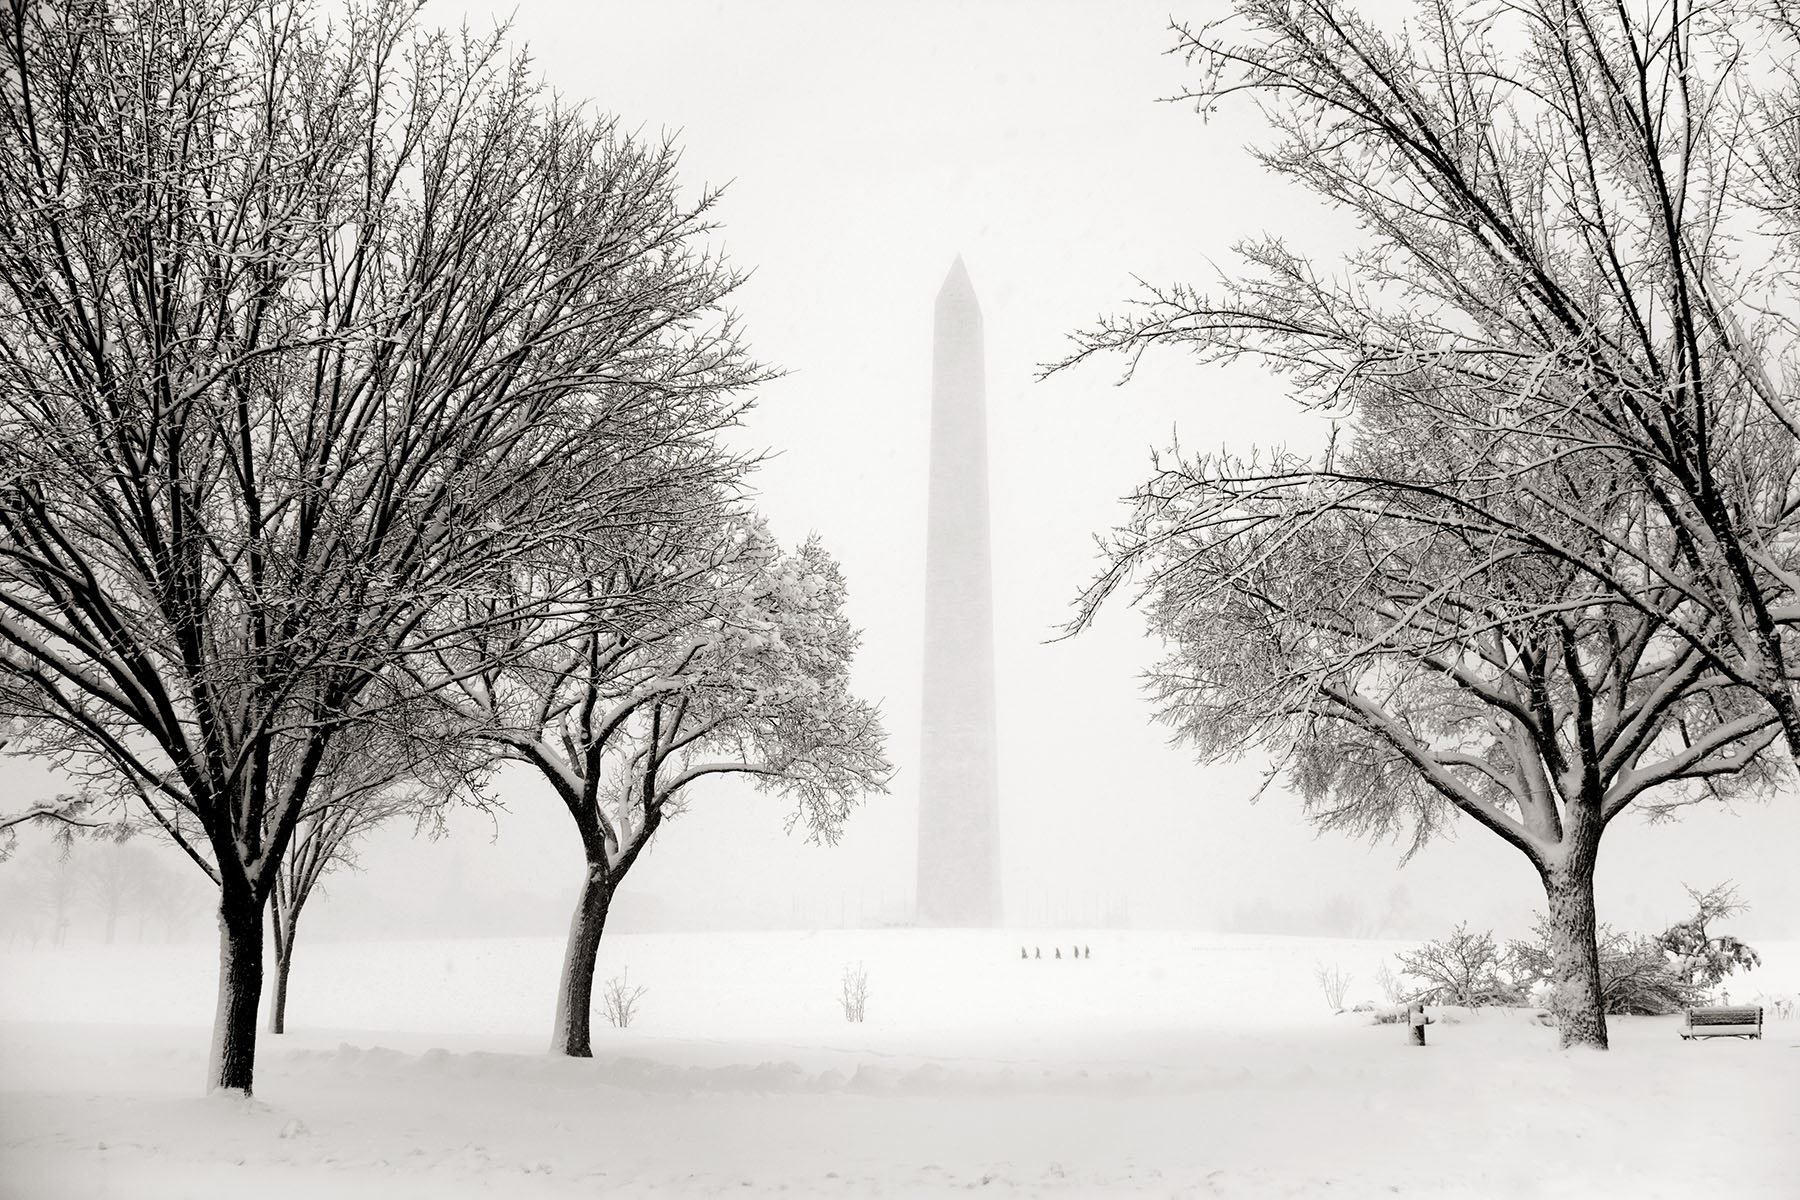 The Washington Monument is seen during an intense winter blizzard hit the nation's capital and much of the Mid Atlantic region, shutting down the Federal government.